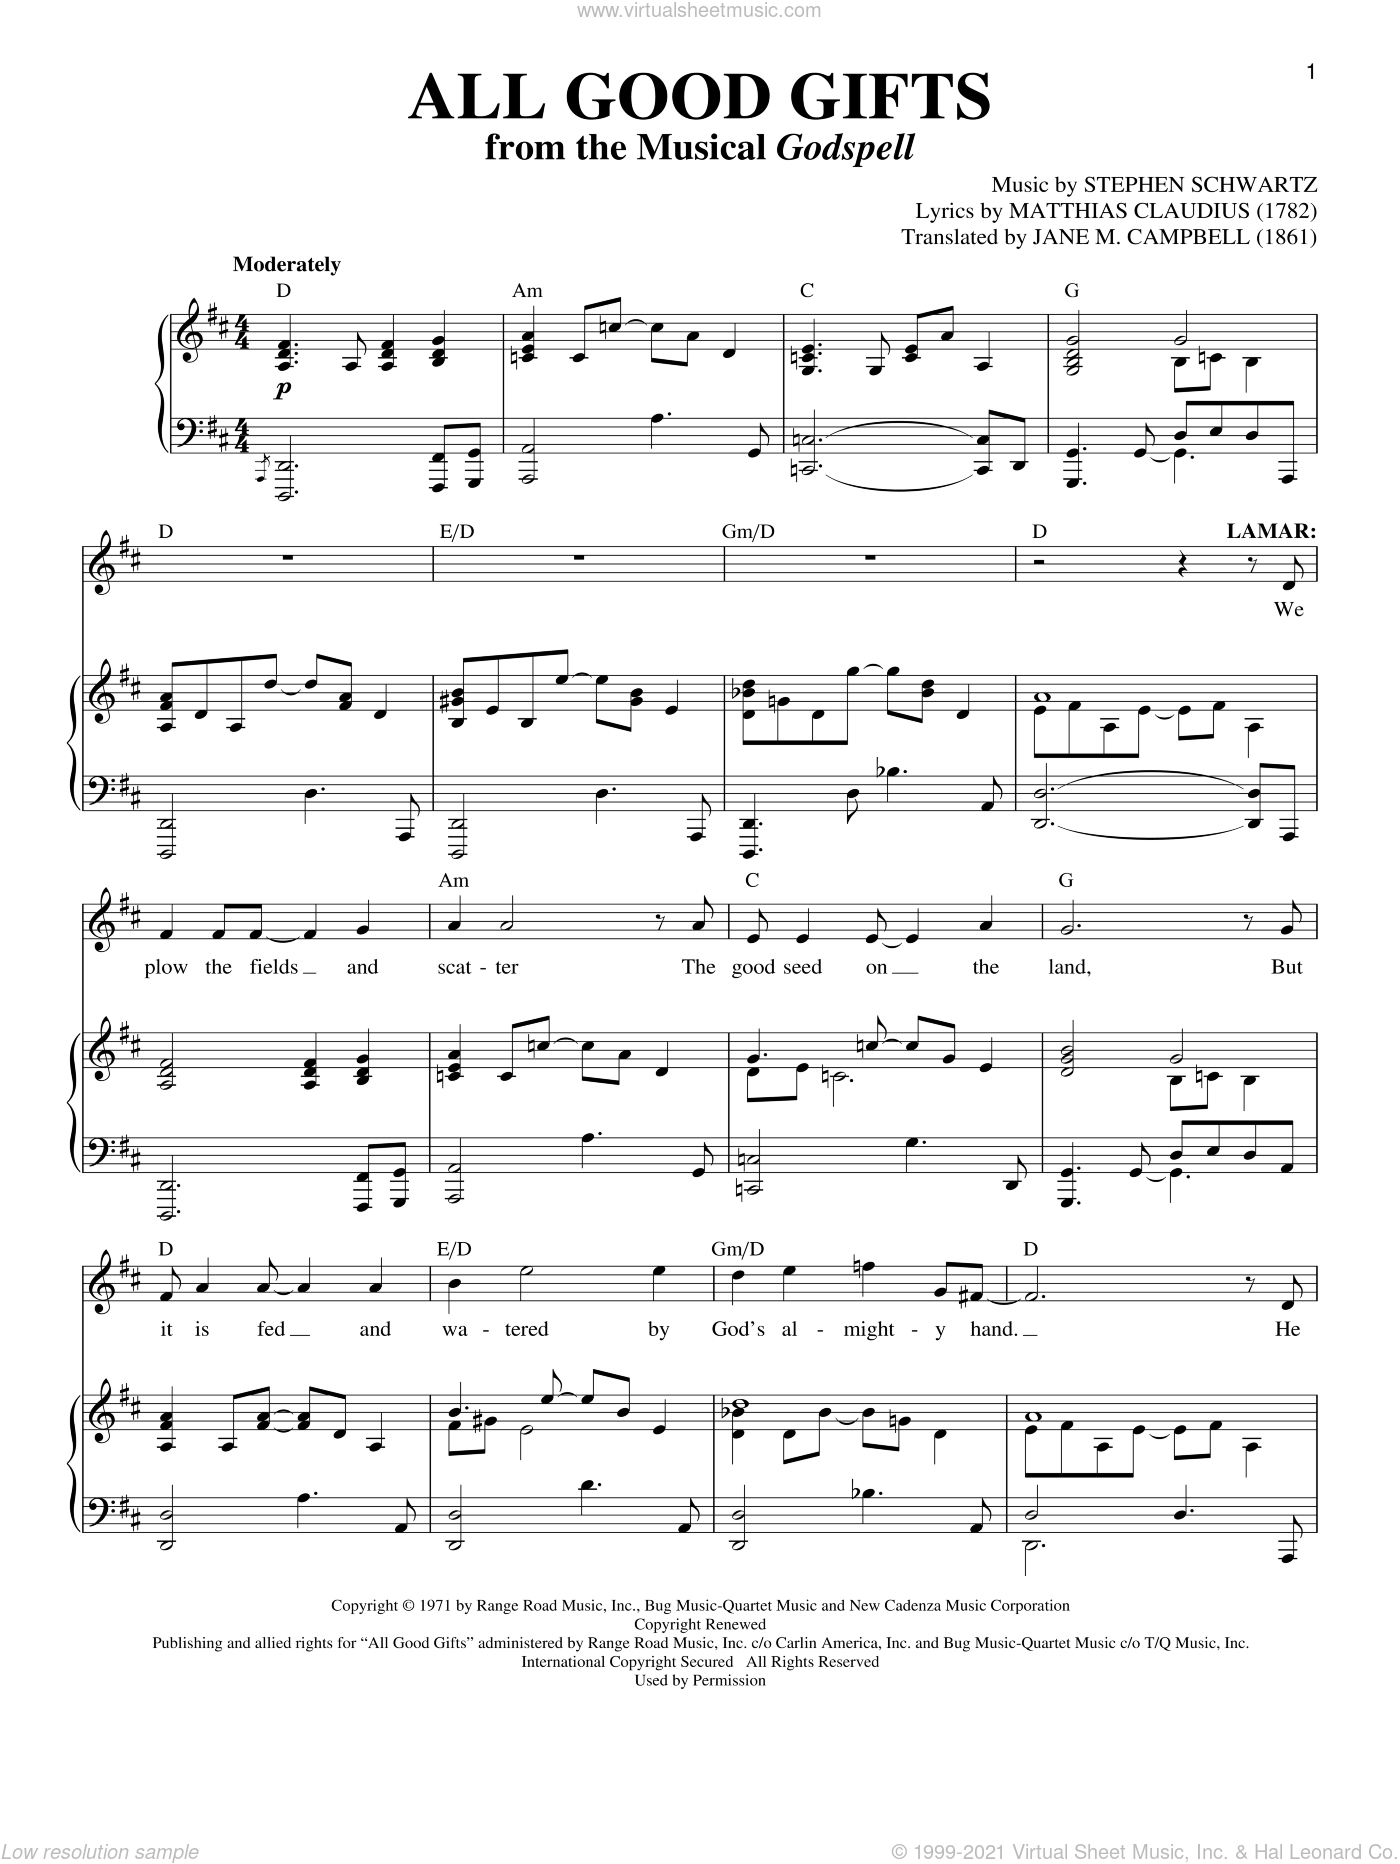 All Good Gifts sheet music for voice and piano by Matthias Claudius, Jane M. Campbell and Stephen Schwartz